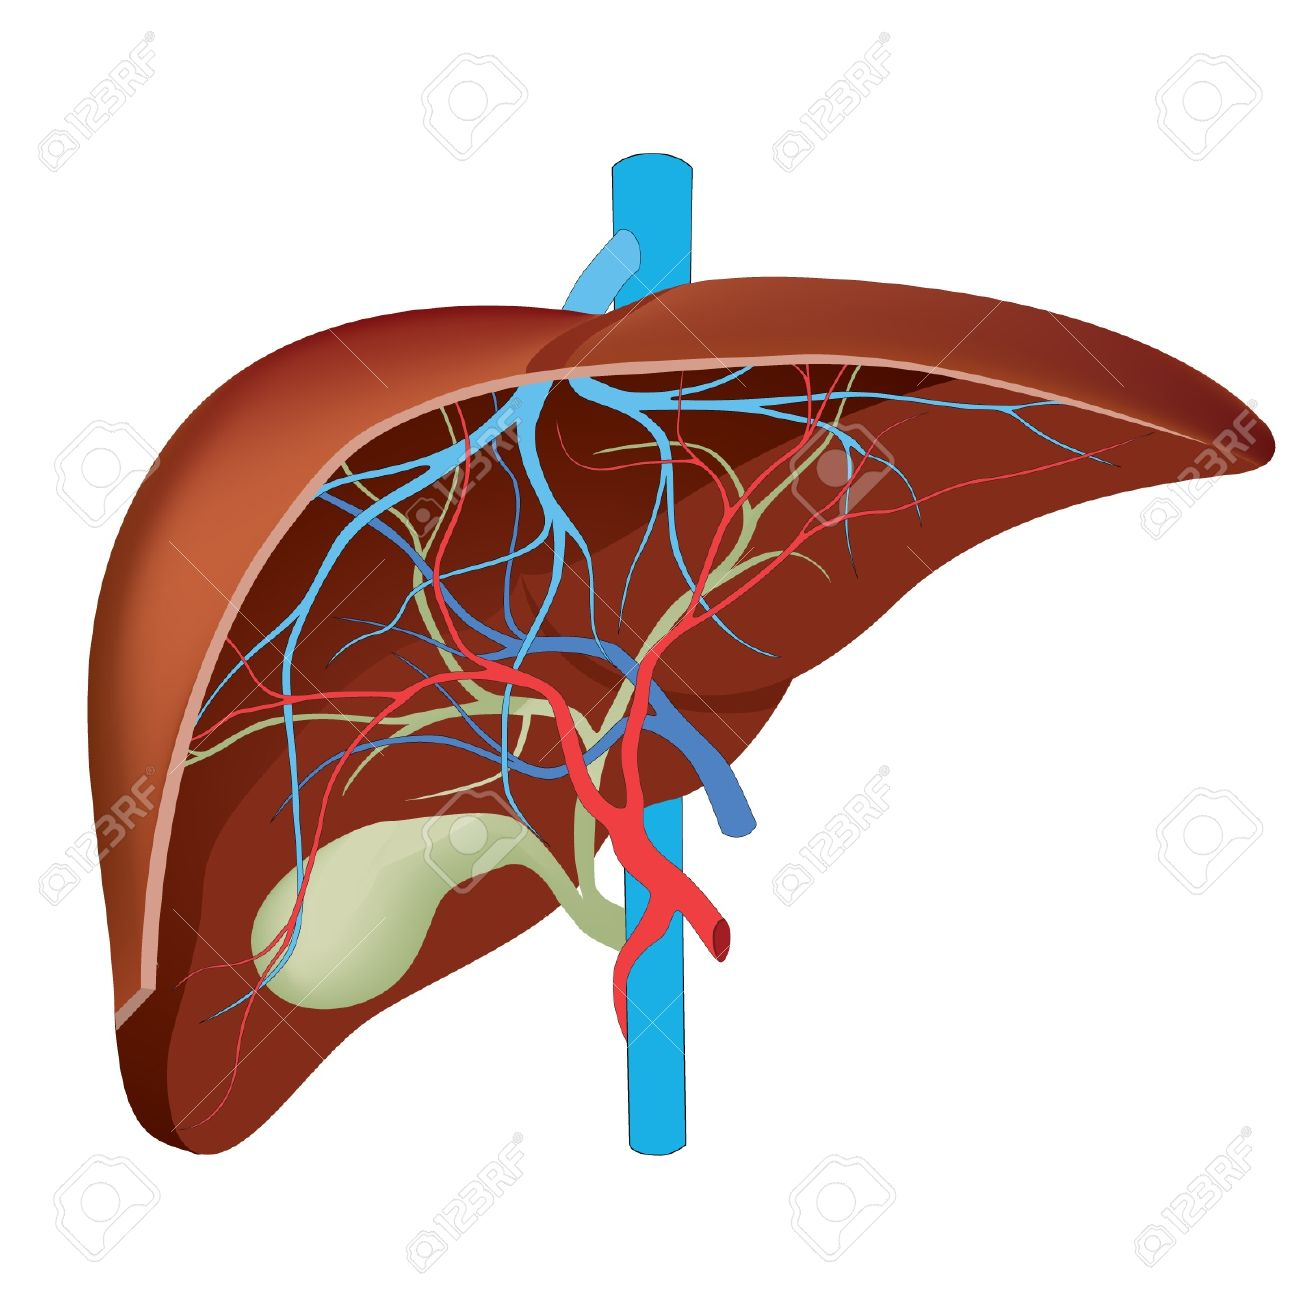 Liver Structure Of The Human Liver Scientifically Accurate Royalty